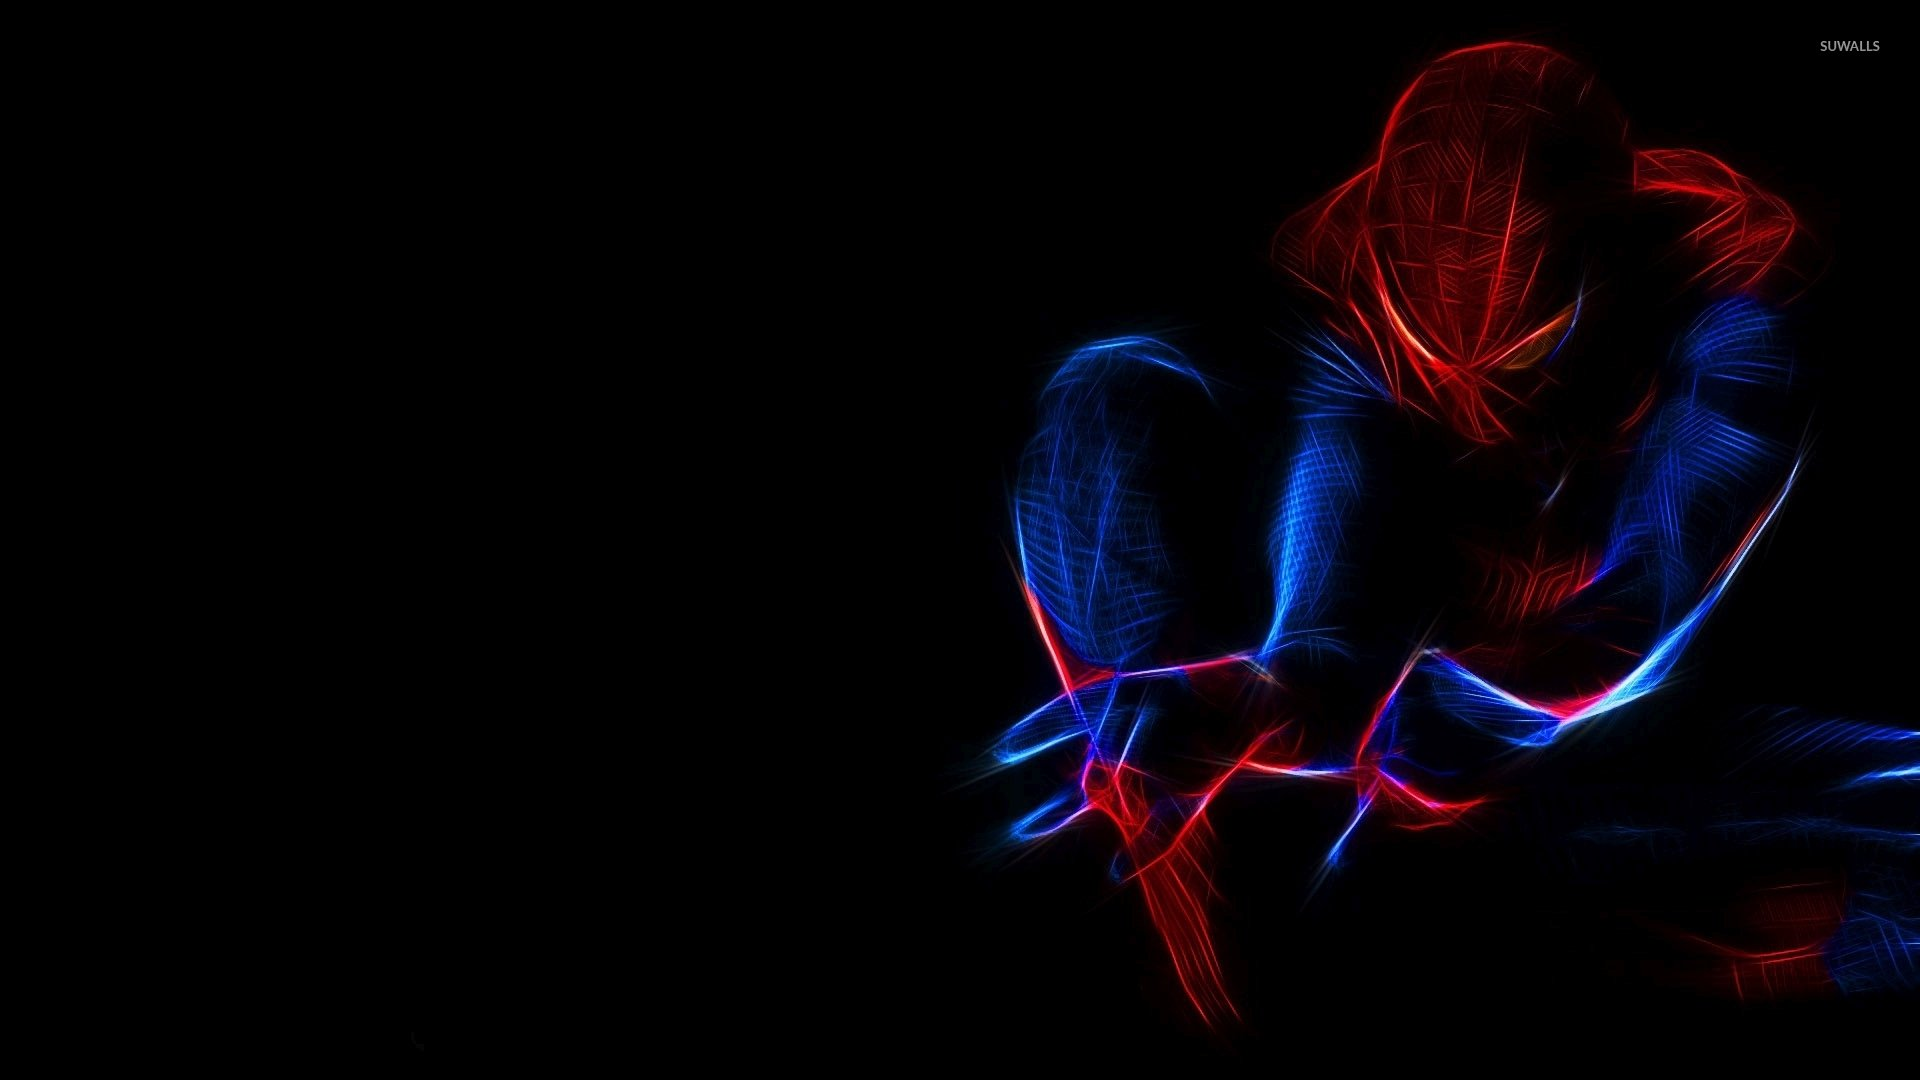 The Amazing Spider Man wallpaper   Movie wallpapers   34122 1920x1080